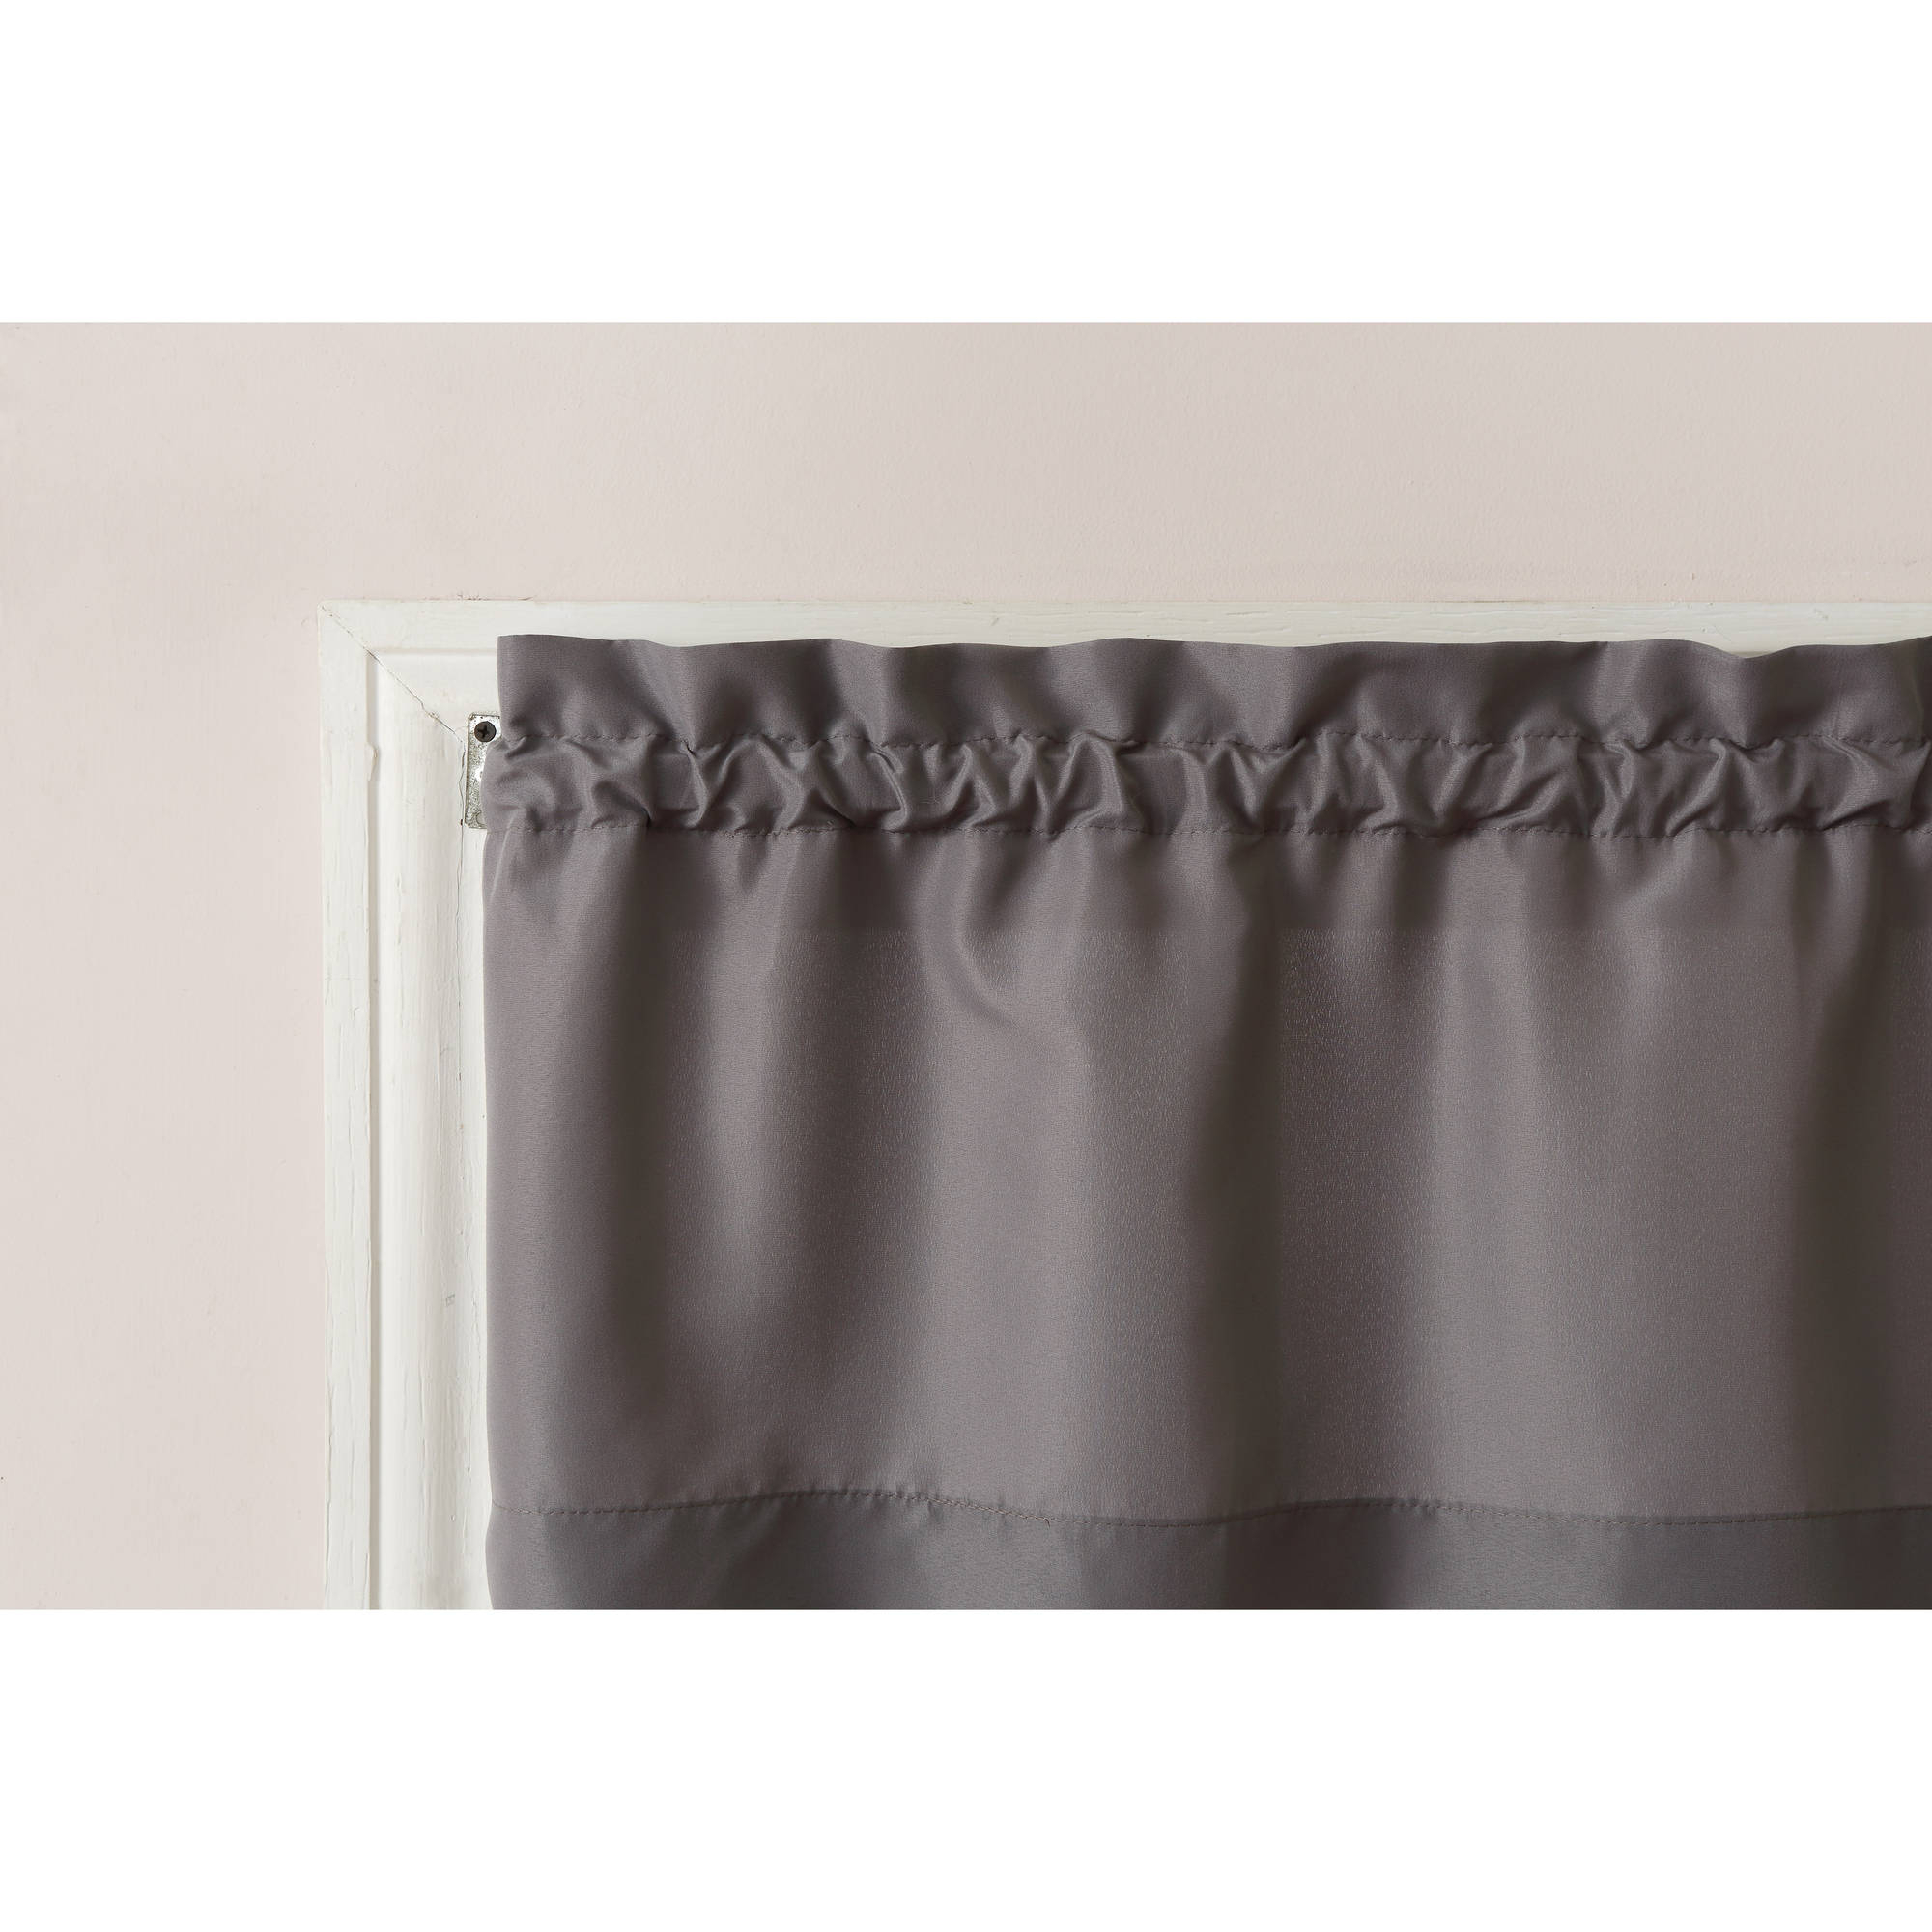 Mainstays Solid 3 Piece Kitchen Curtain Tier And Valance Set With Newest Solid Microfiber 3 Piece Kitchen Curtain Valance And Tiers Sets (View 18 of 20)